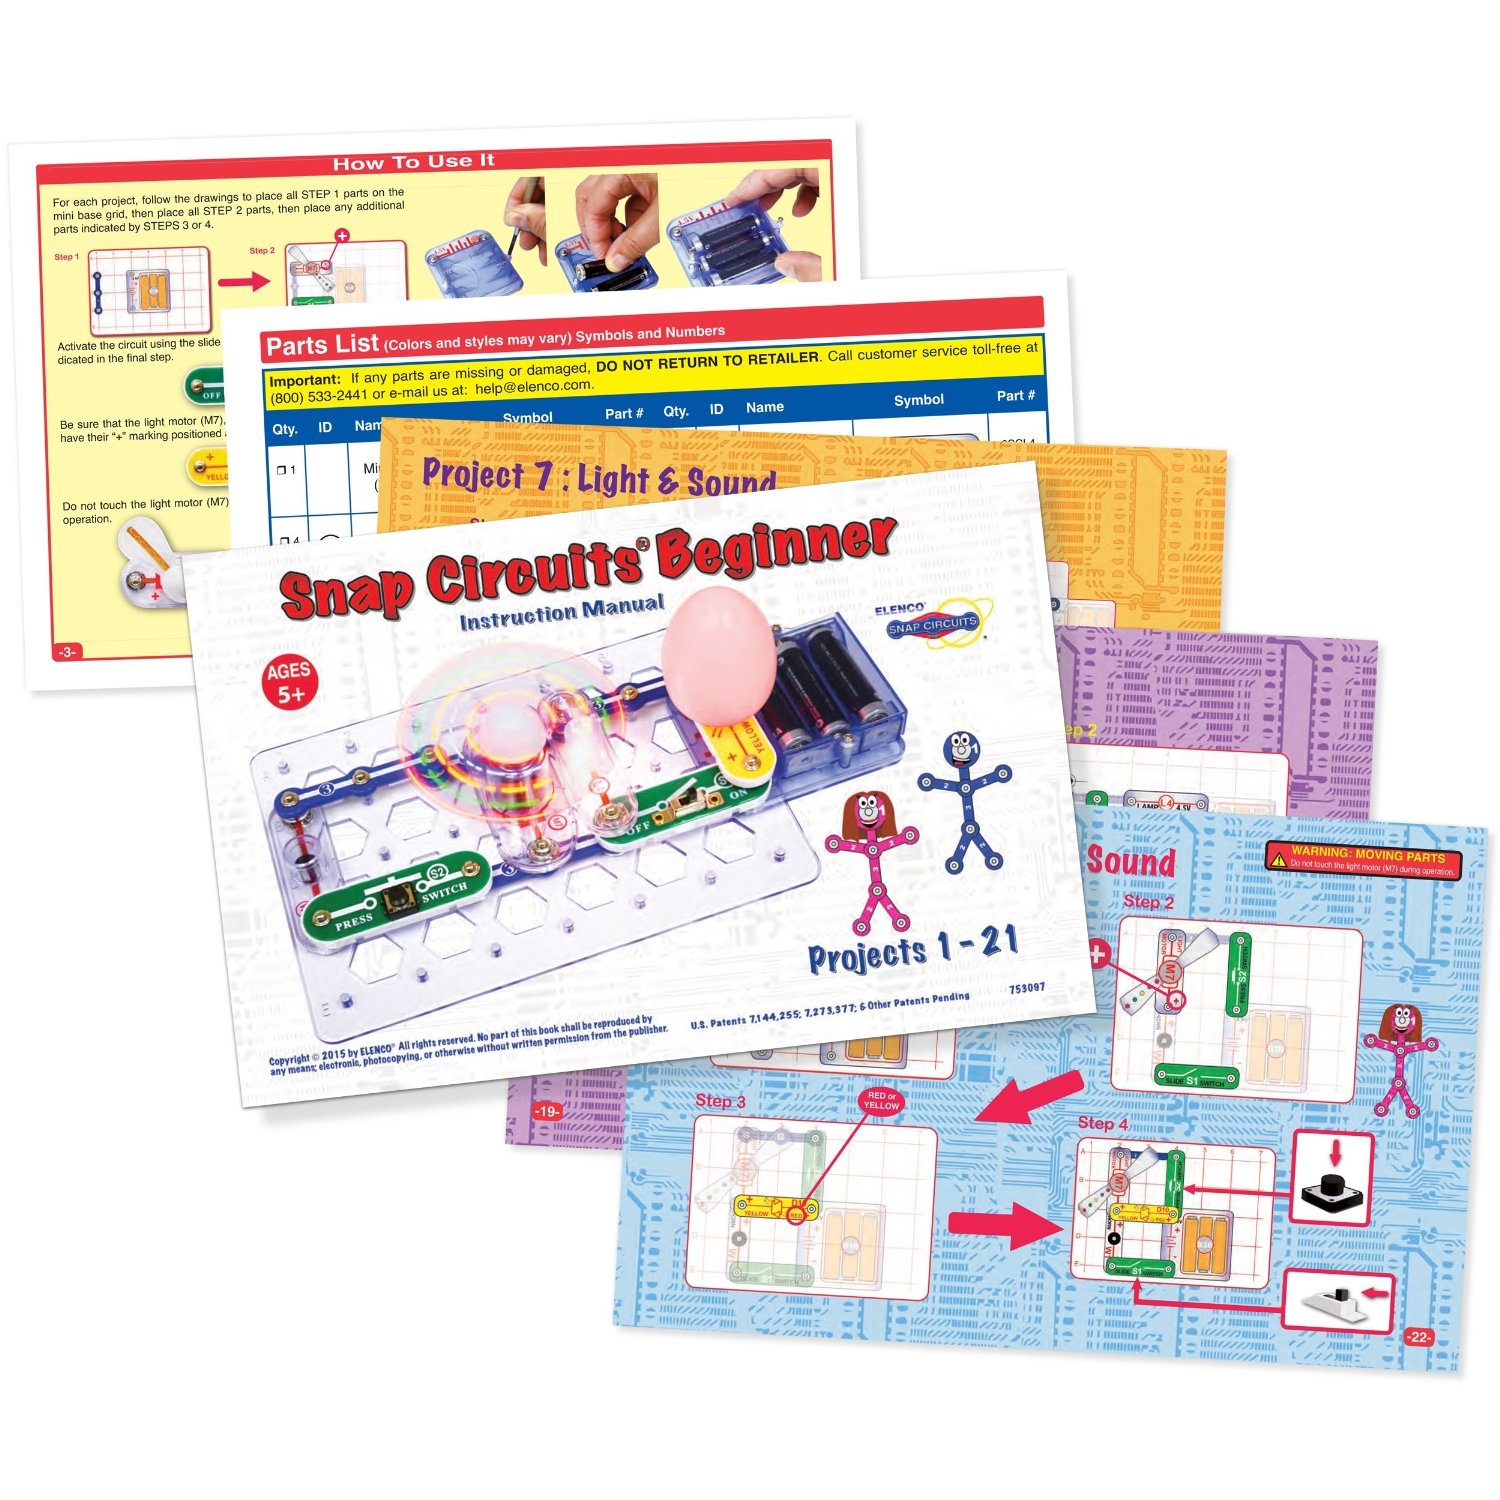 Technology Electronics Steam Collection Cis Sls Web Pages At Snap Circuits Sound And Light Combo Additional Photo Inside Page Circuit Kits